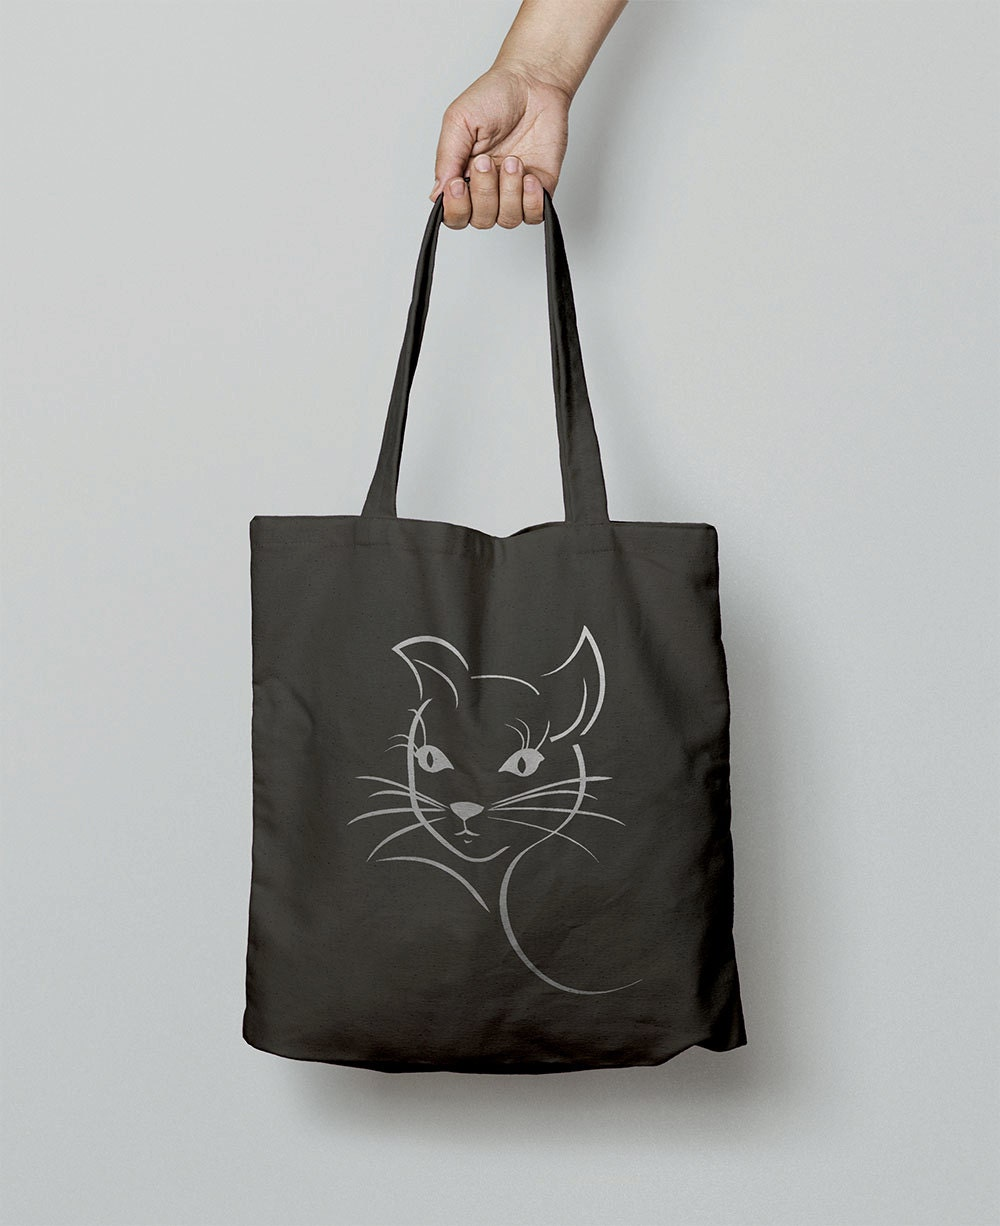 Cat Tote Bag  Canvas Bag  Shopping Bag  Shoulder Bag  Canvas Tote Bag  Christmas Gift For Girlfriend  Animal Gift Women  Cats